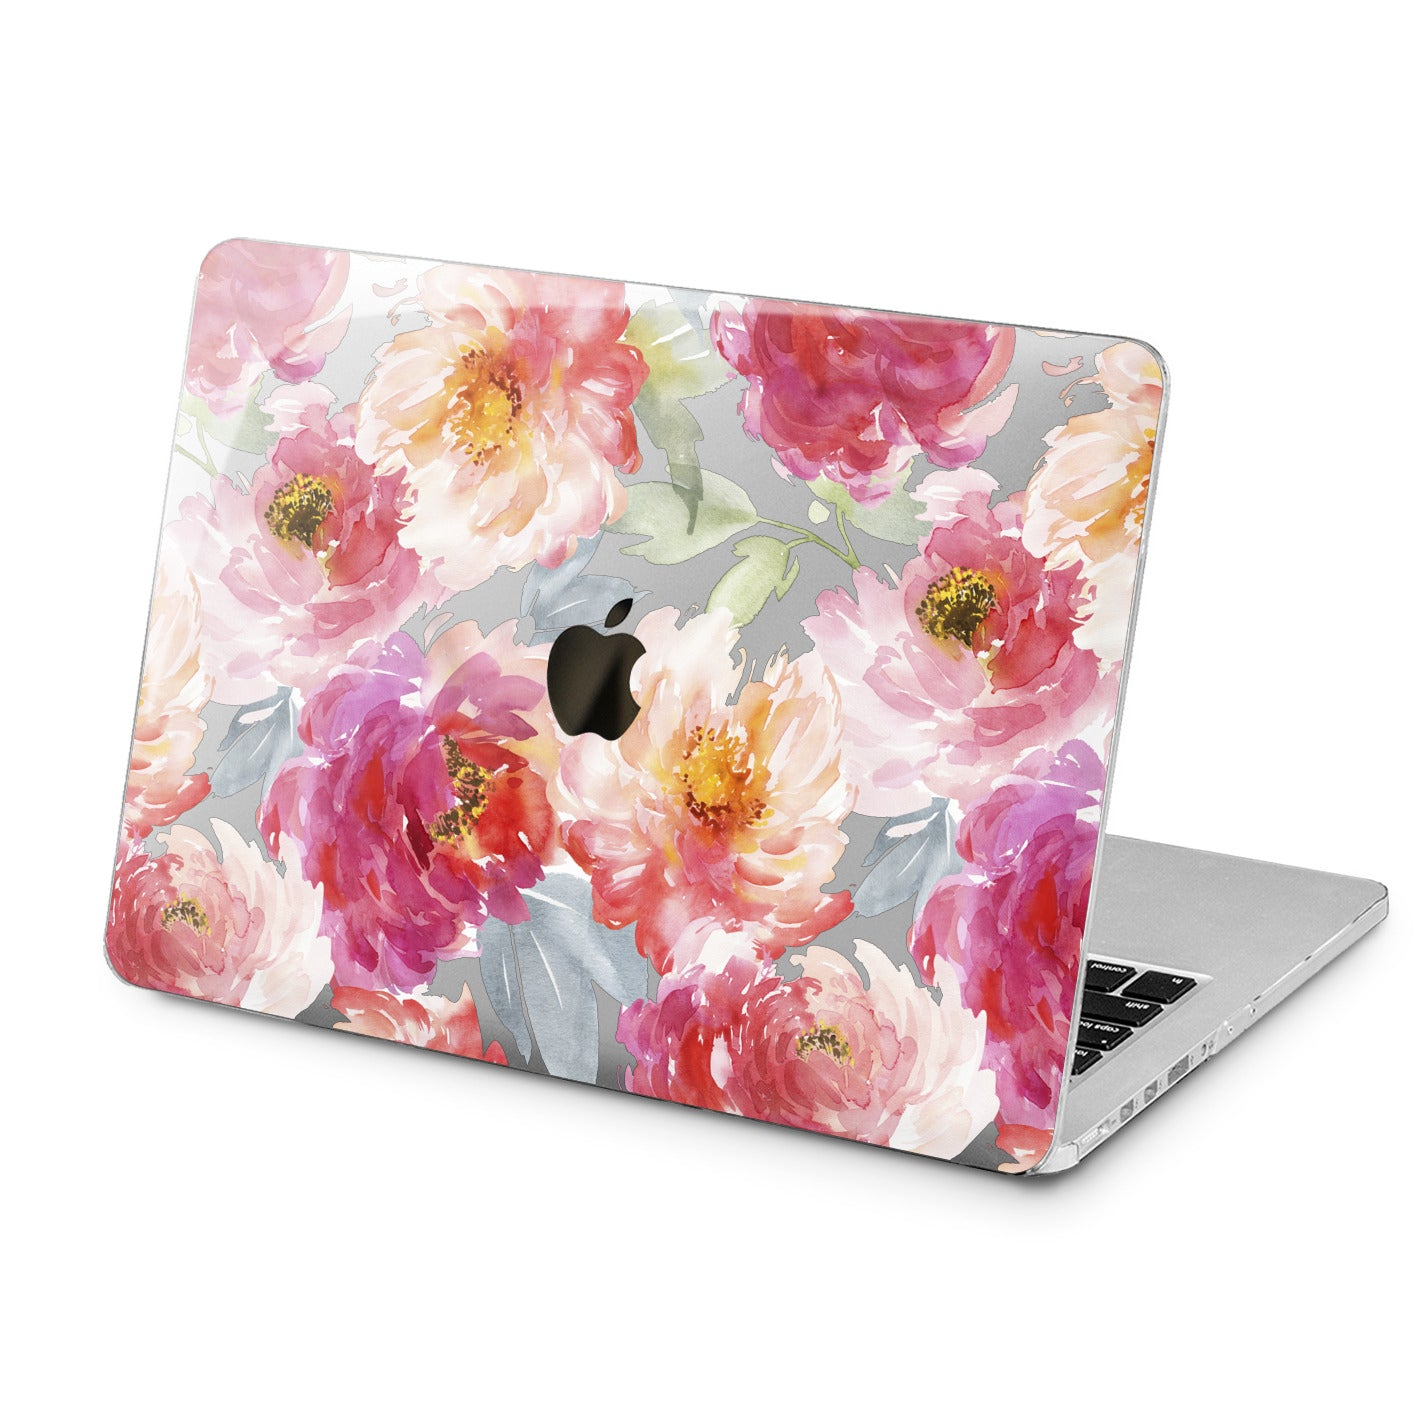 Lex Altern Pink Peonies Design Case for your Laptop Apple Macbook.